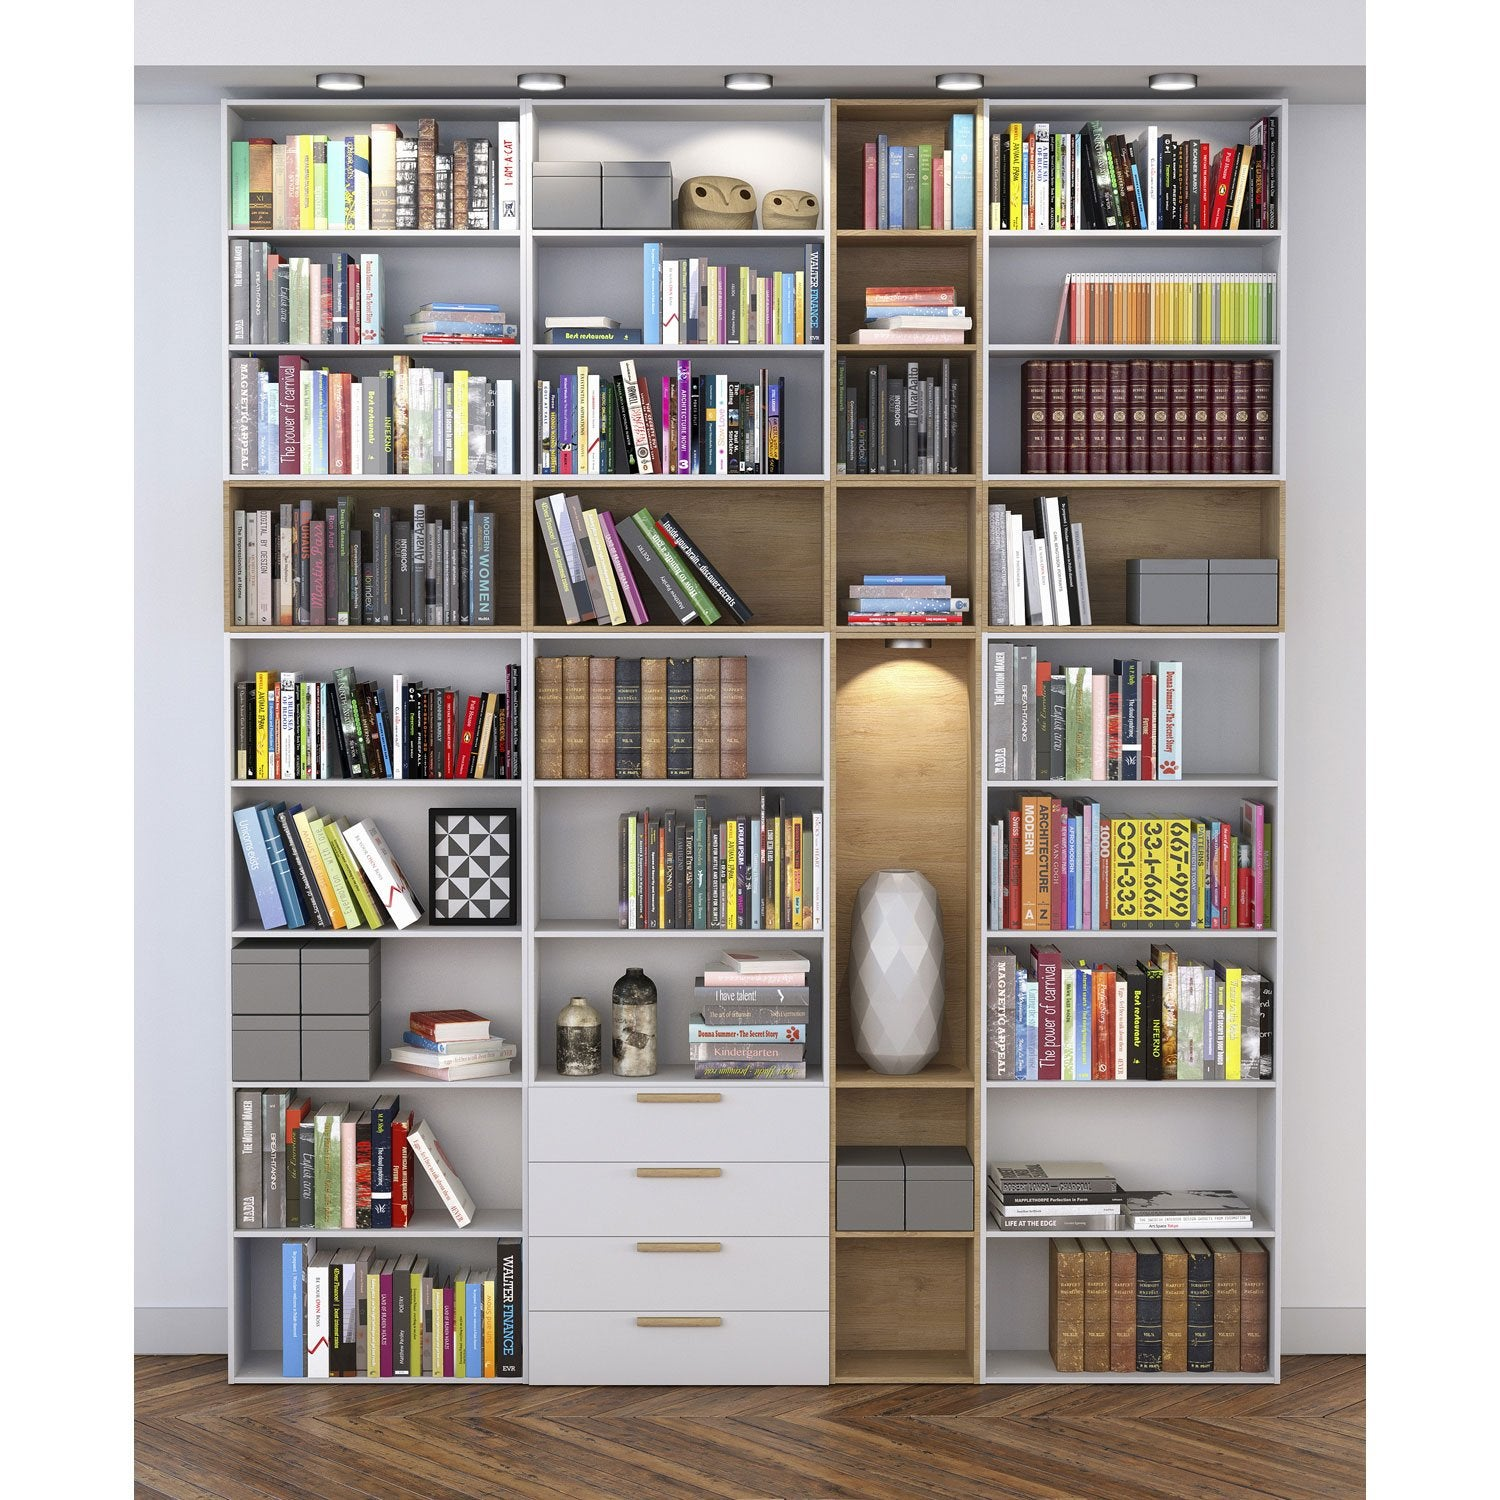 Biblioth que spaceo home effet ch ne leroy merlin - Meuble bibliotheque leroy merlin ...